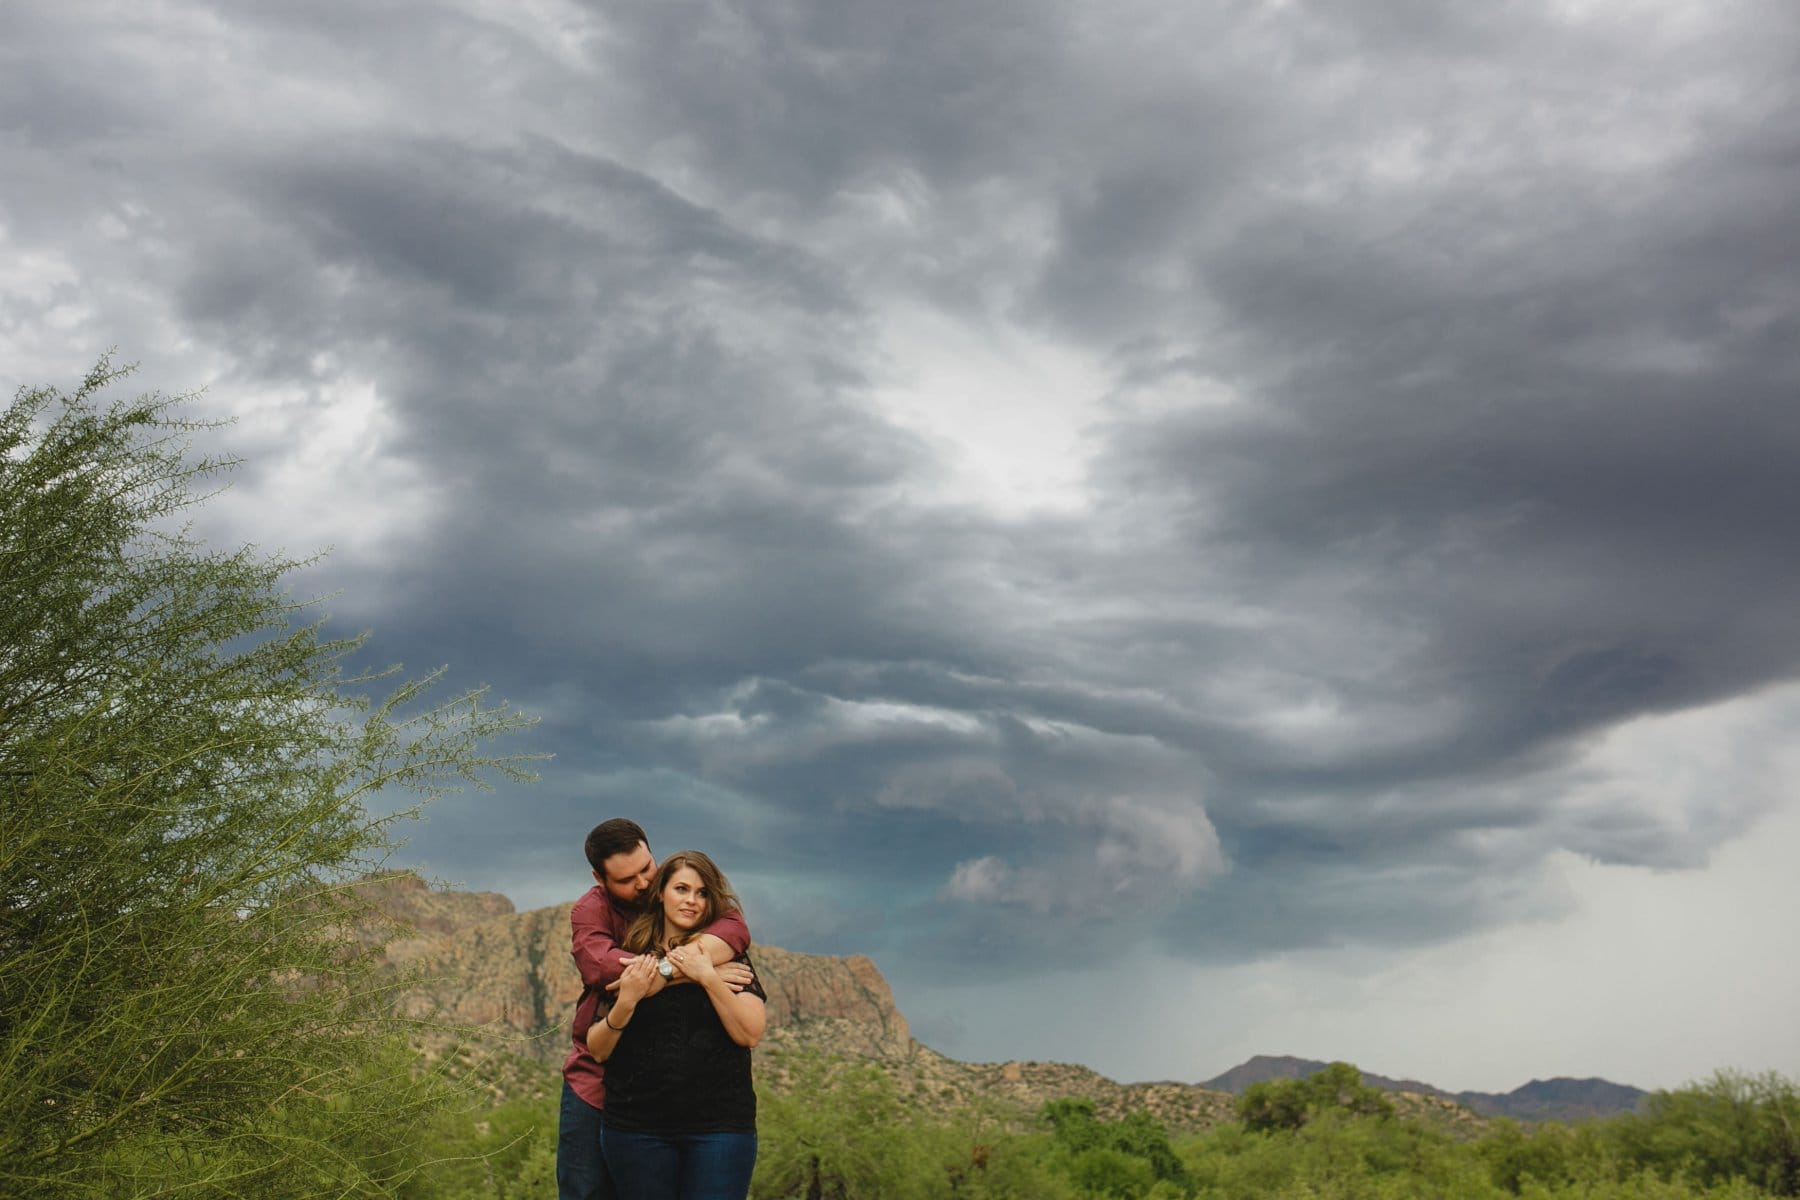 engagement session in monsoon storm Arizona